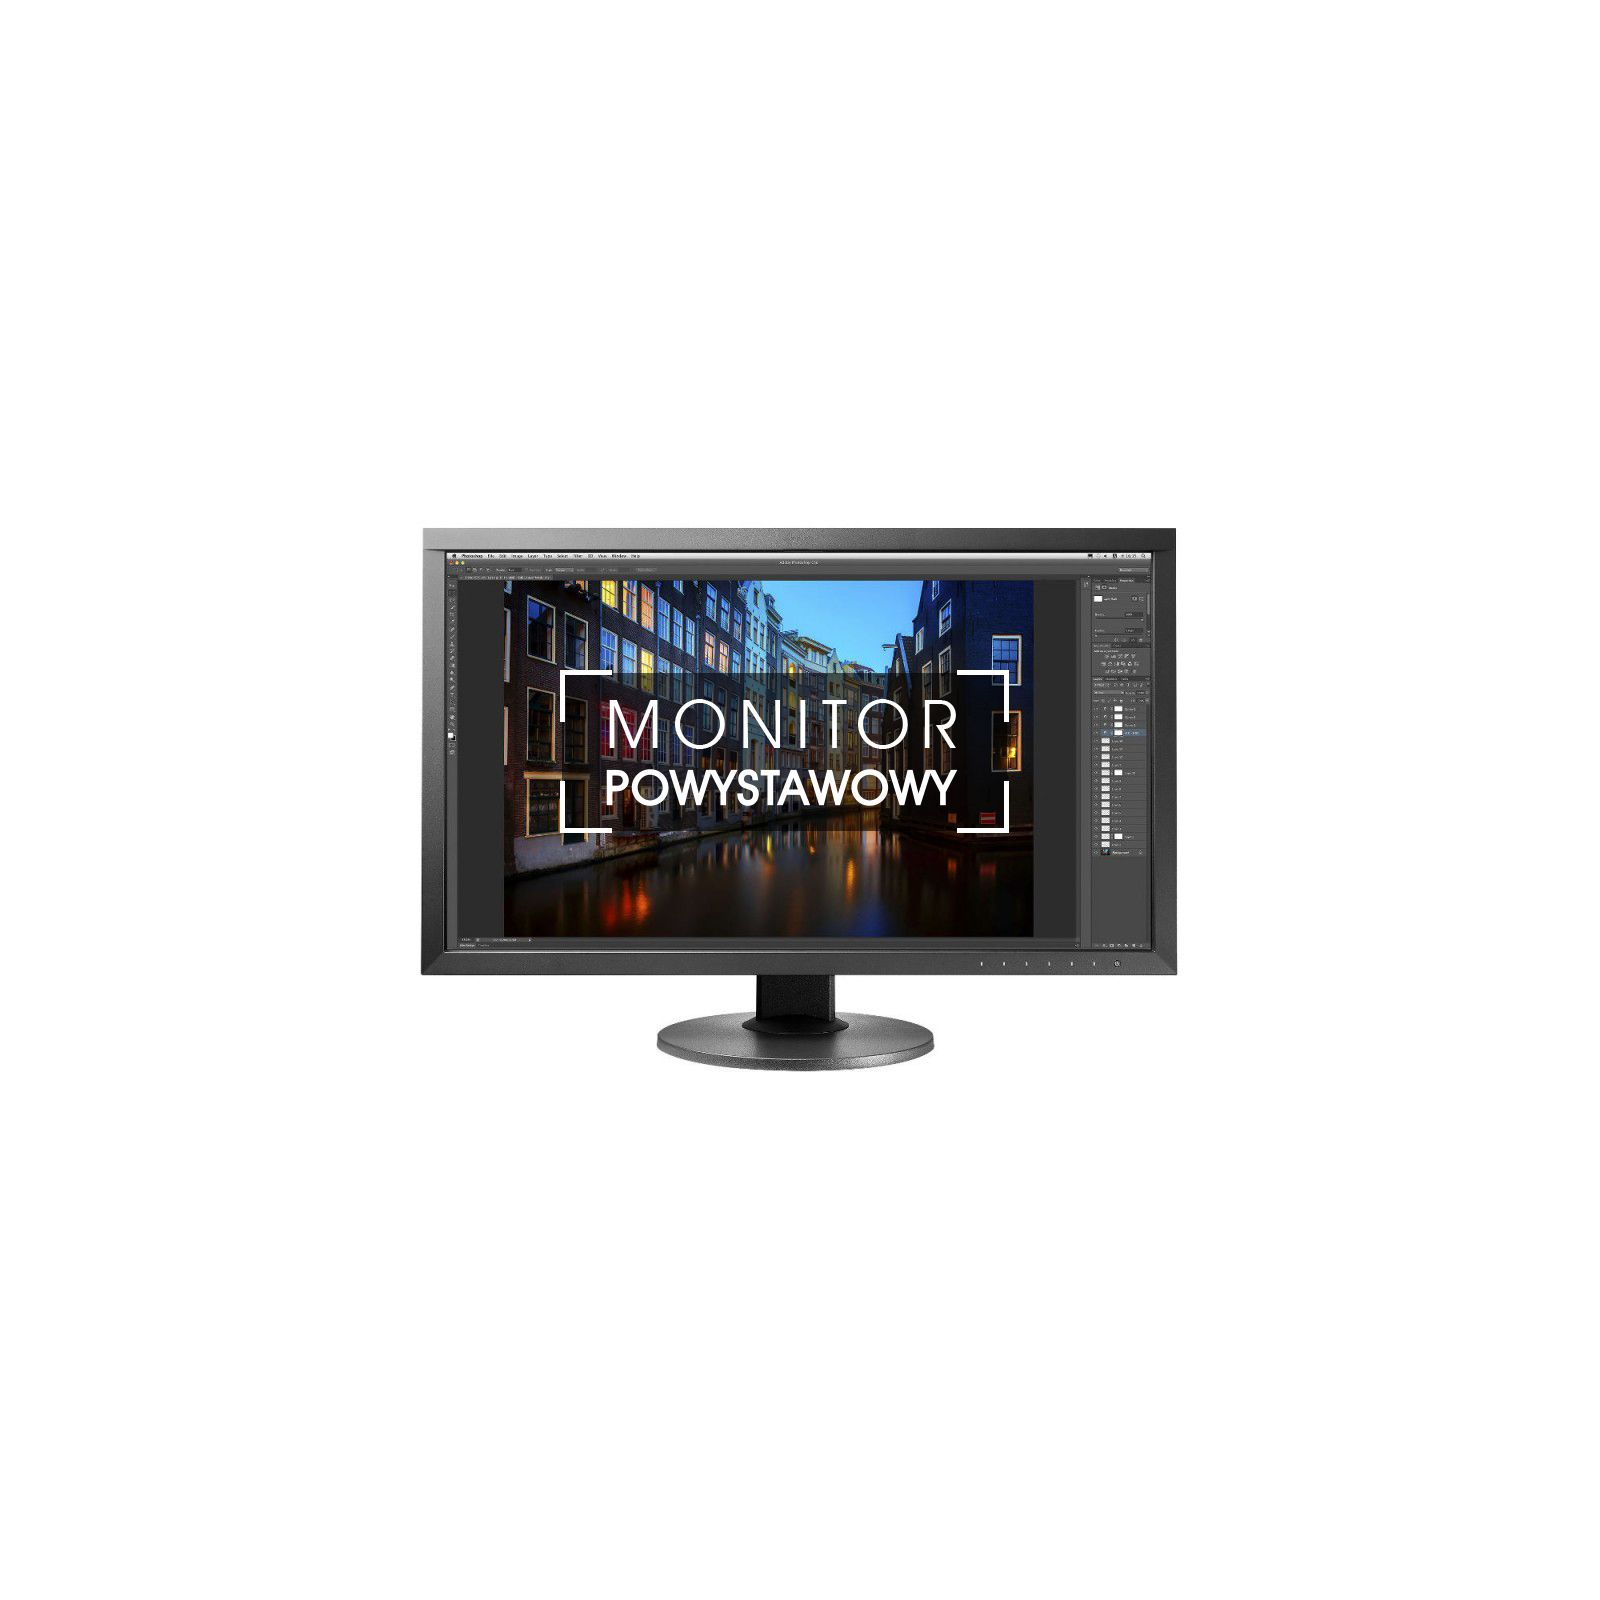 "Monitor 27"" Eizo ColorEdge CS2730 - powystawowy"